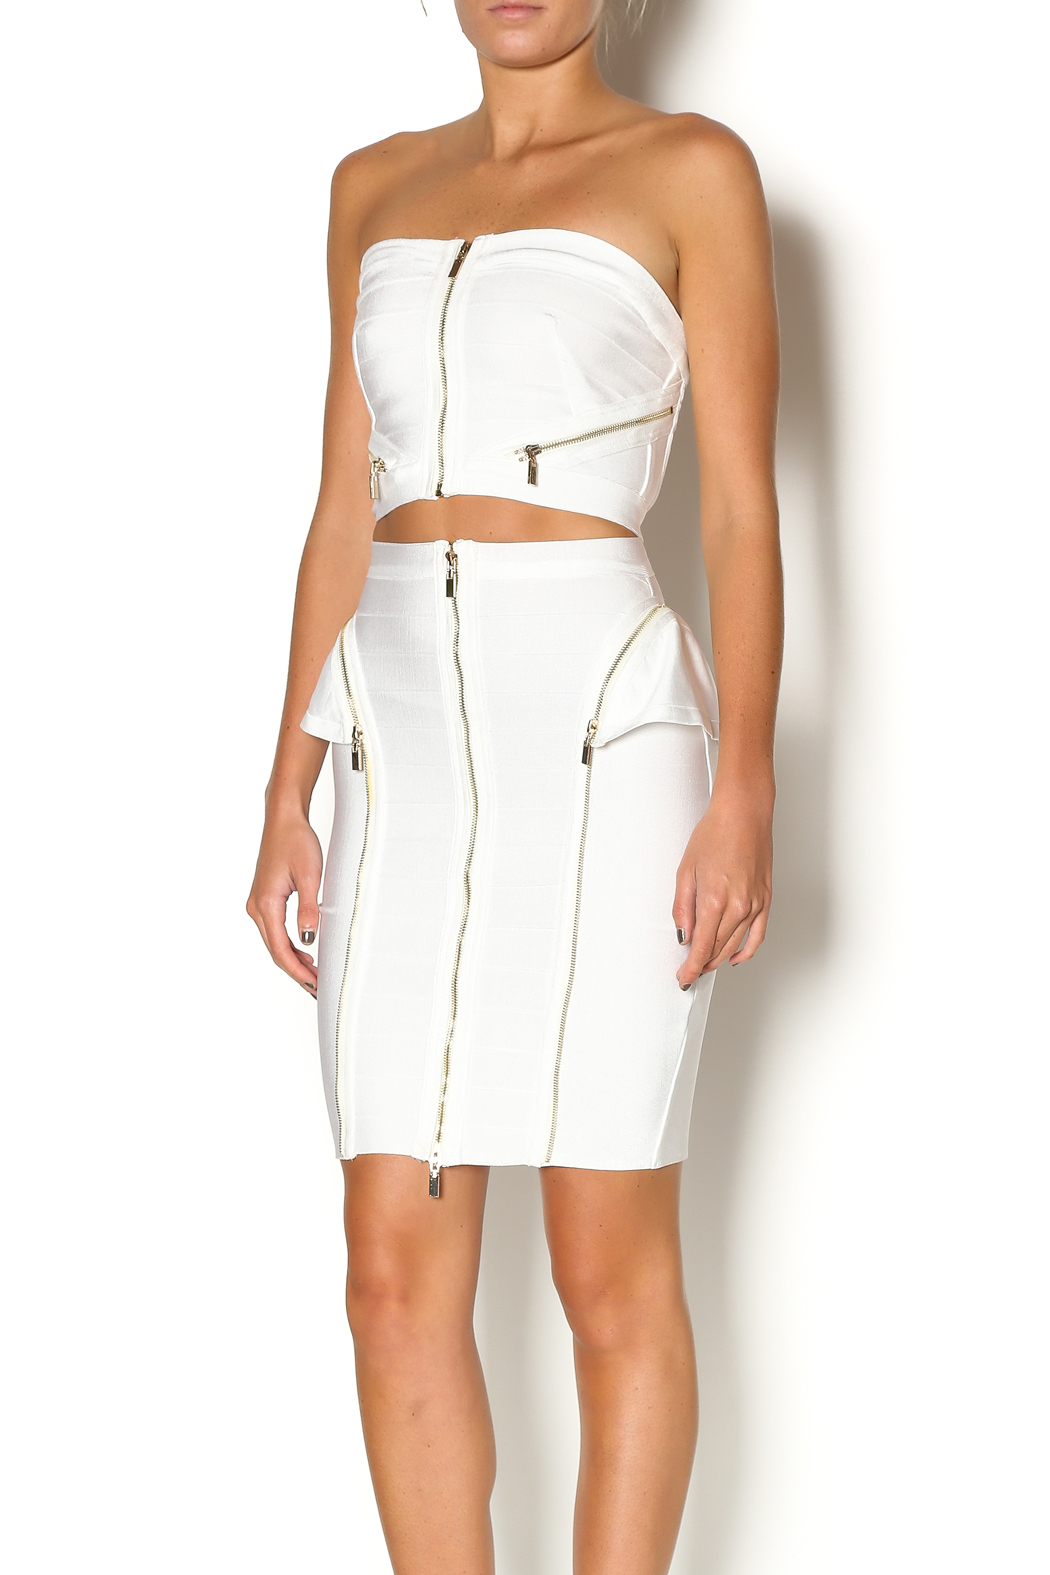 Wow Couture Two Piece Bandage Set - Main Image